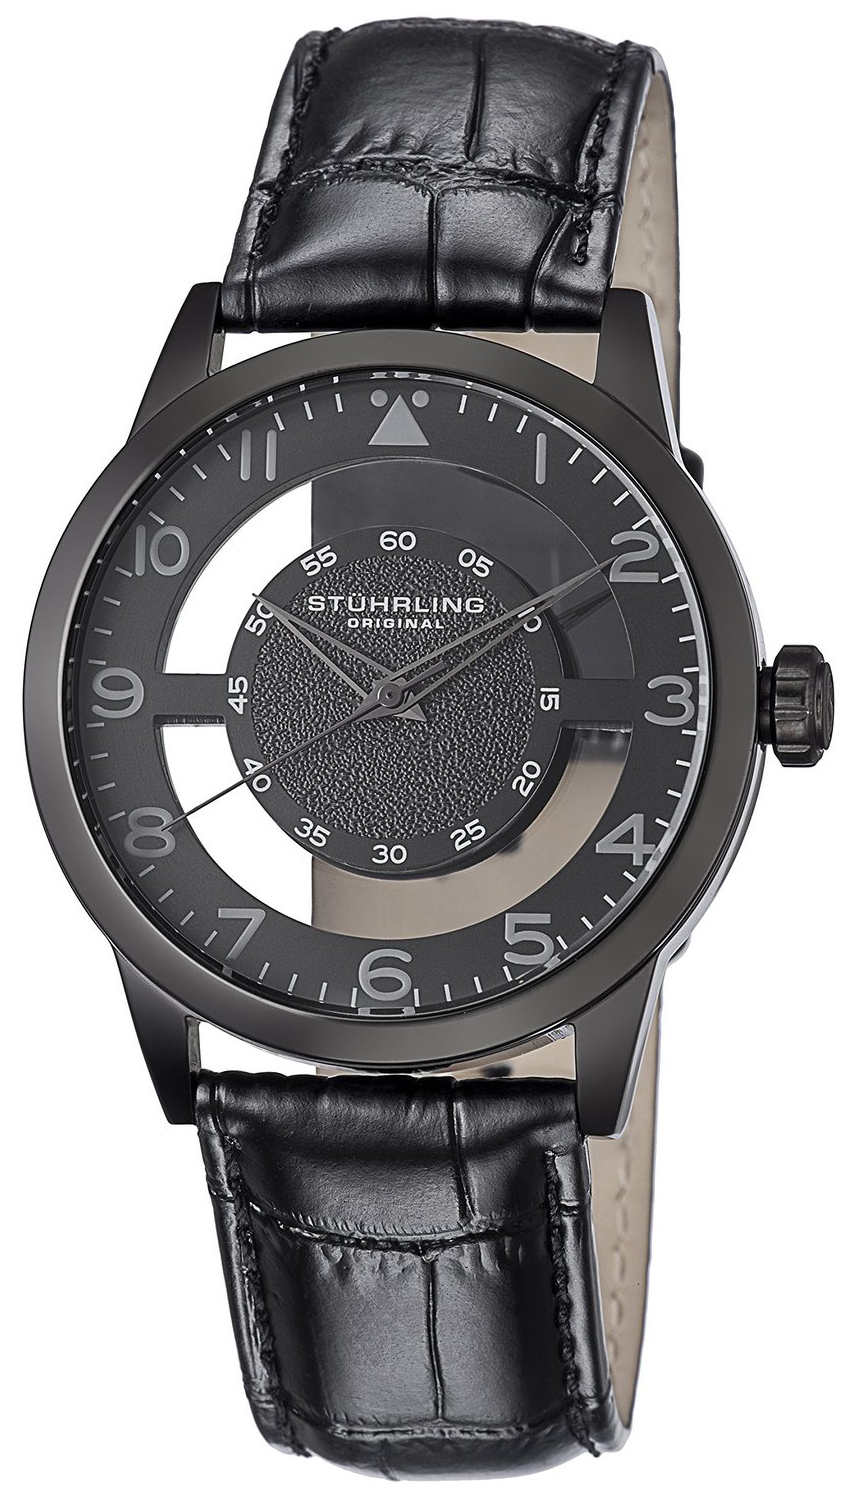 Stührling Original Aviator Herreur 650.04 Sort/Læder Ø42 mm